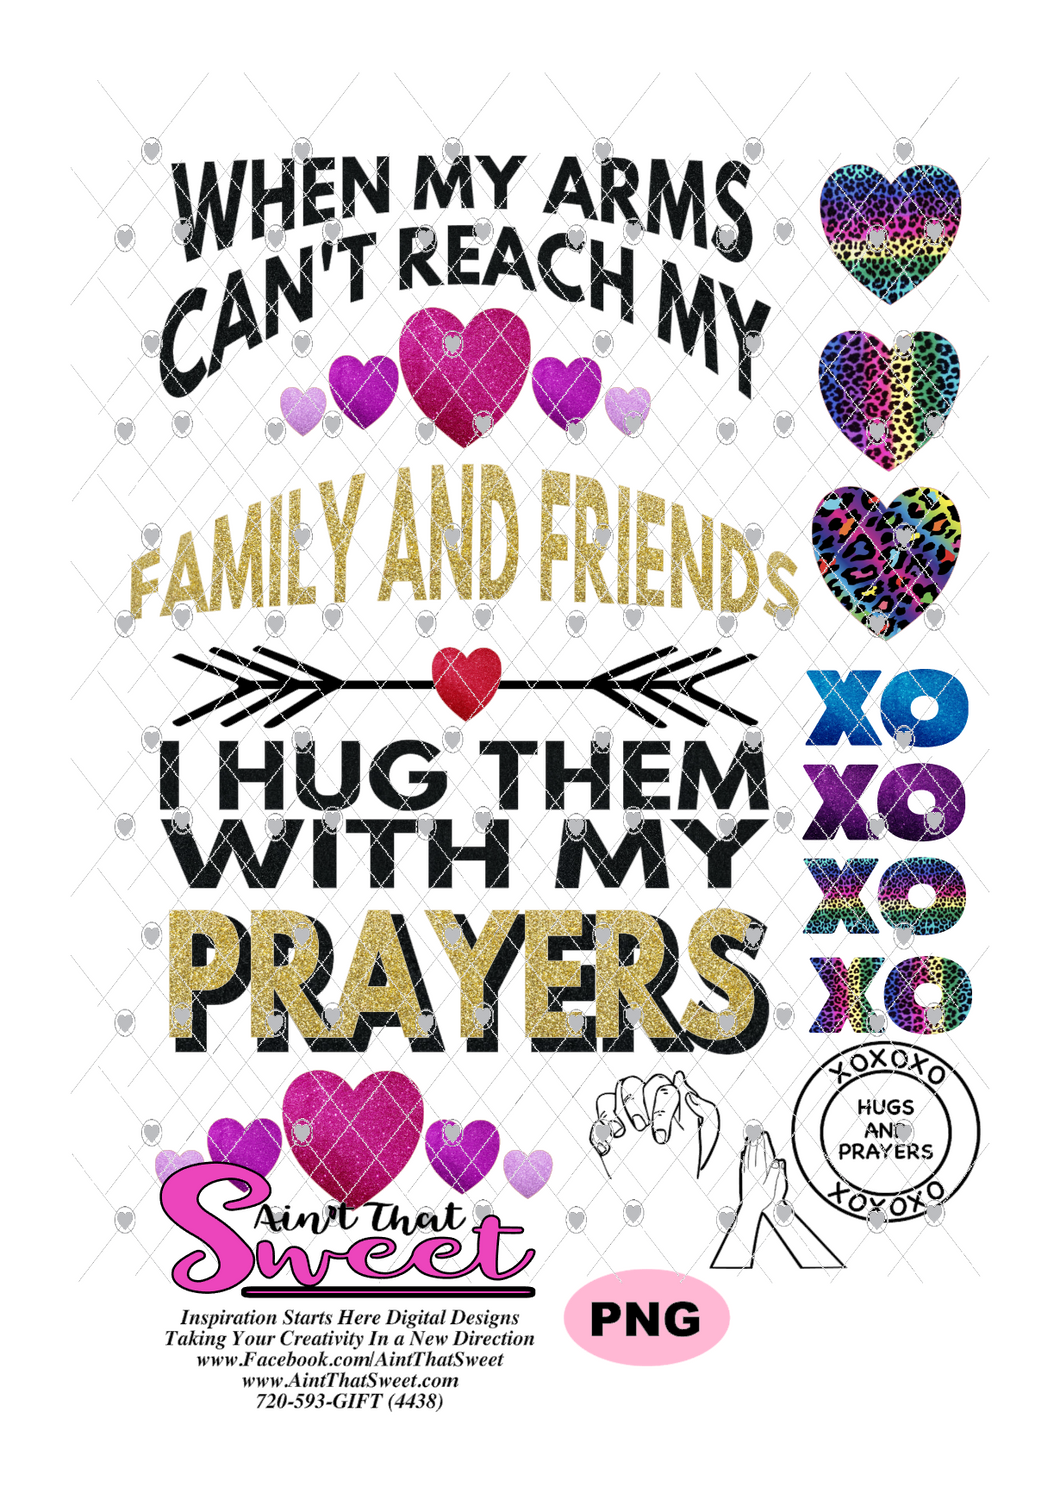 When My Arms Can't Reach MY Family and Friends I Hug Them With My Prayers - 1 PNG Only (1 File) - Sublimation, Printing, Waterslide